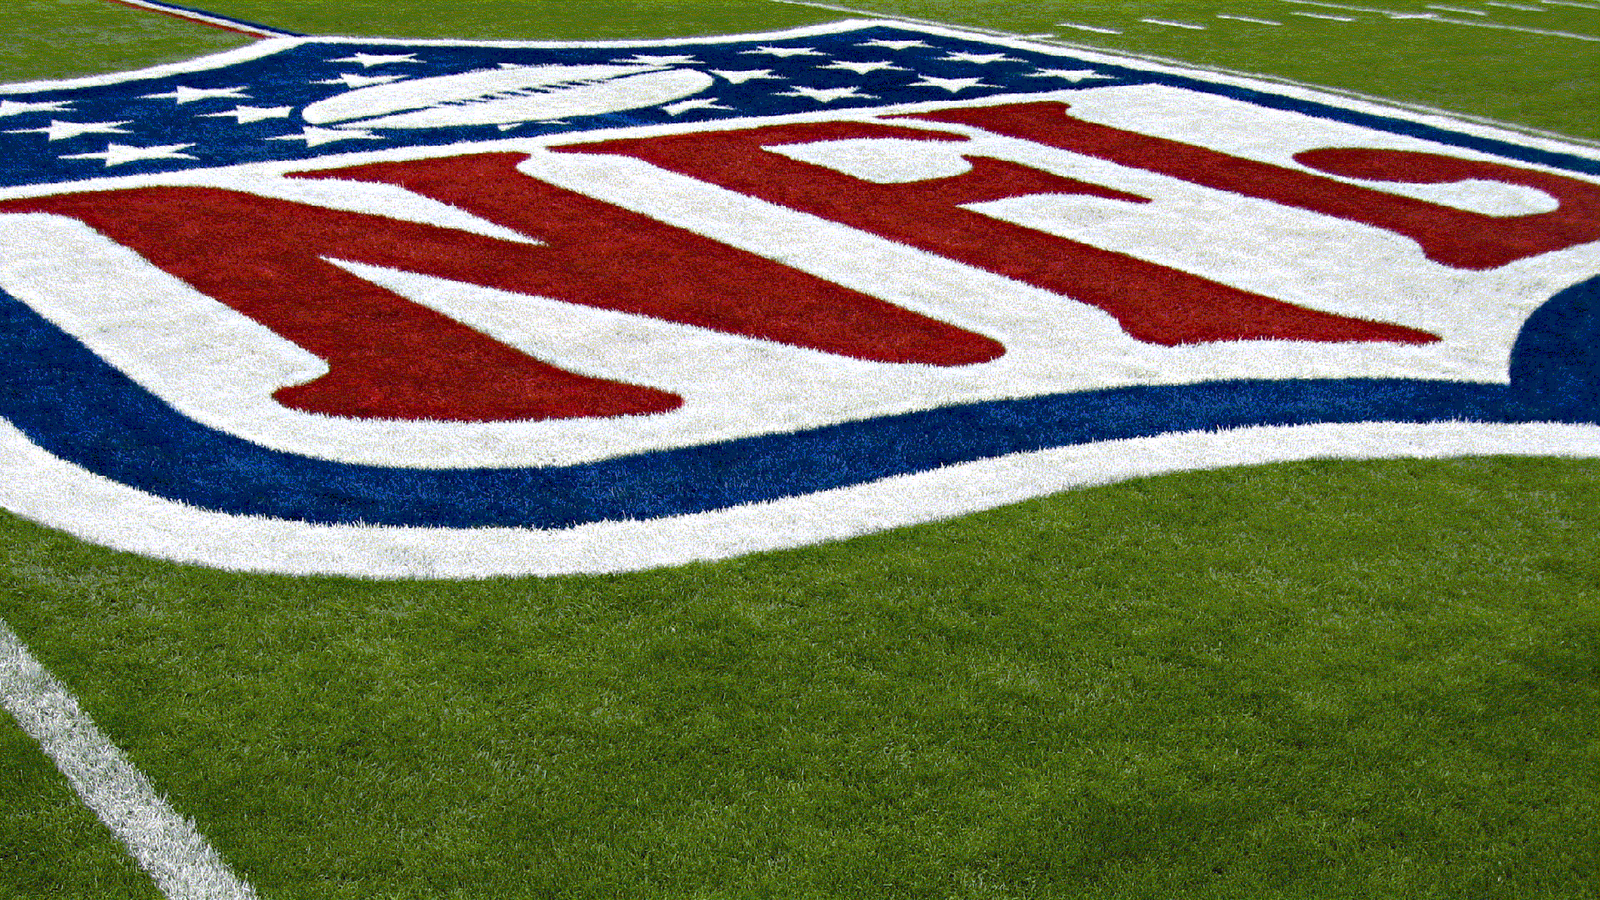 Free Download Nfl Football Hd Wallpapers For: Free Download NFL Football HD Wallpapers For